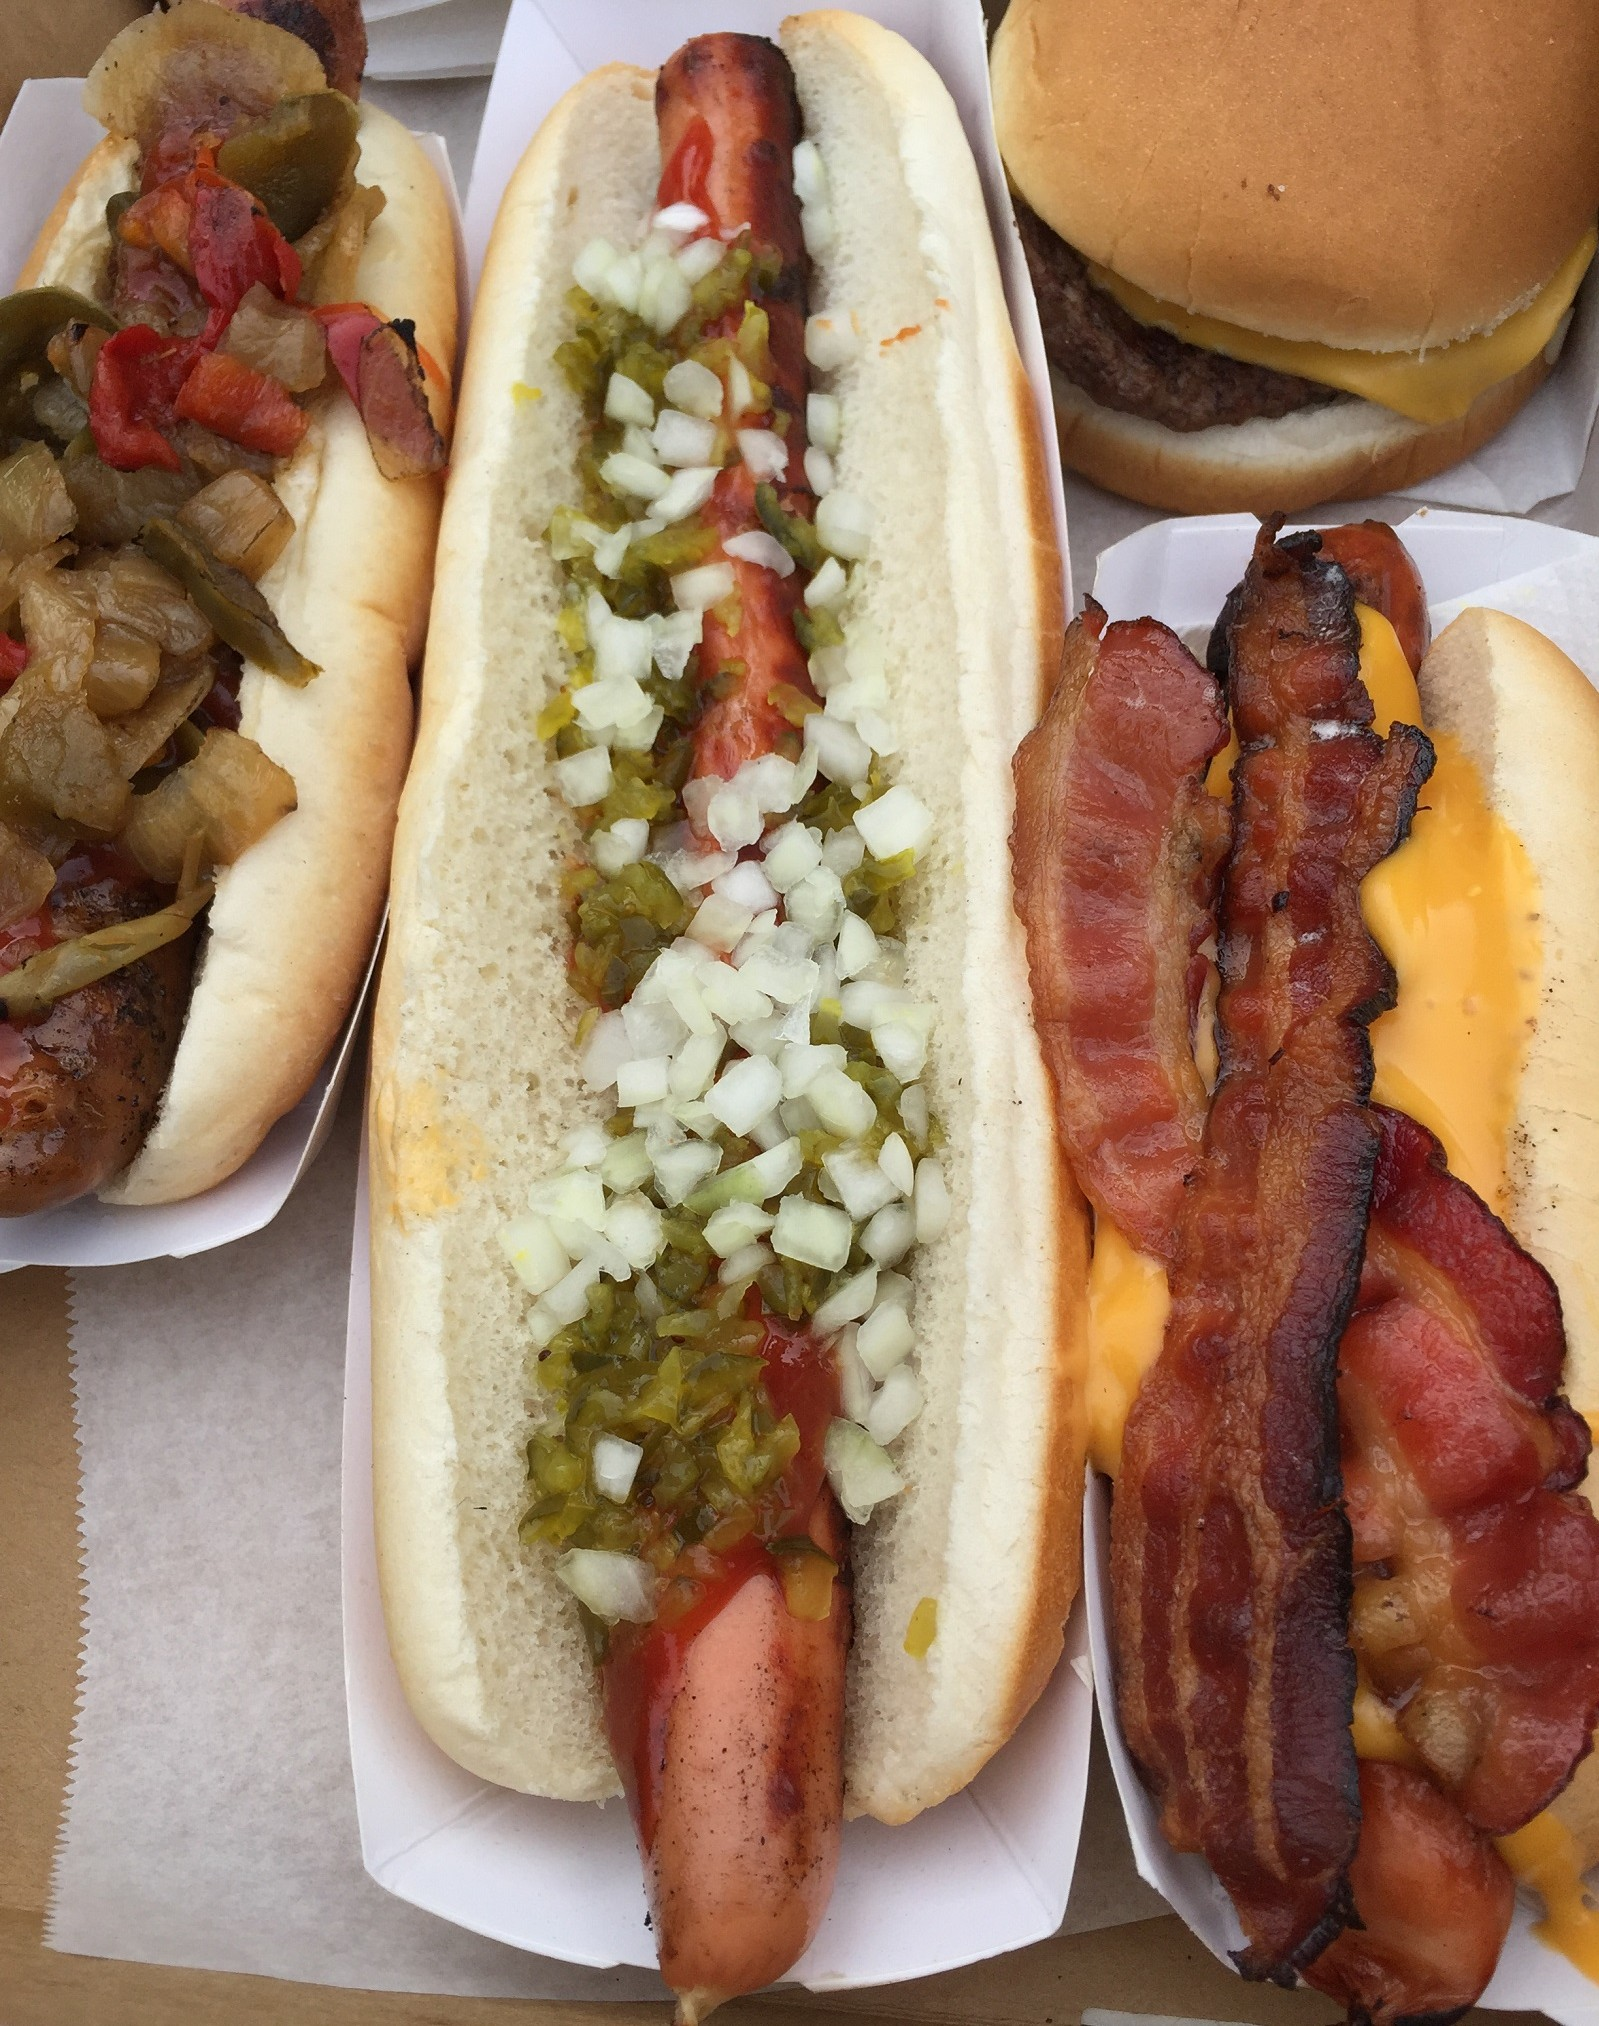 The footlong hot dog with ketchup, onions and relish. (Ben Tsujimoto/Buffalo News)